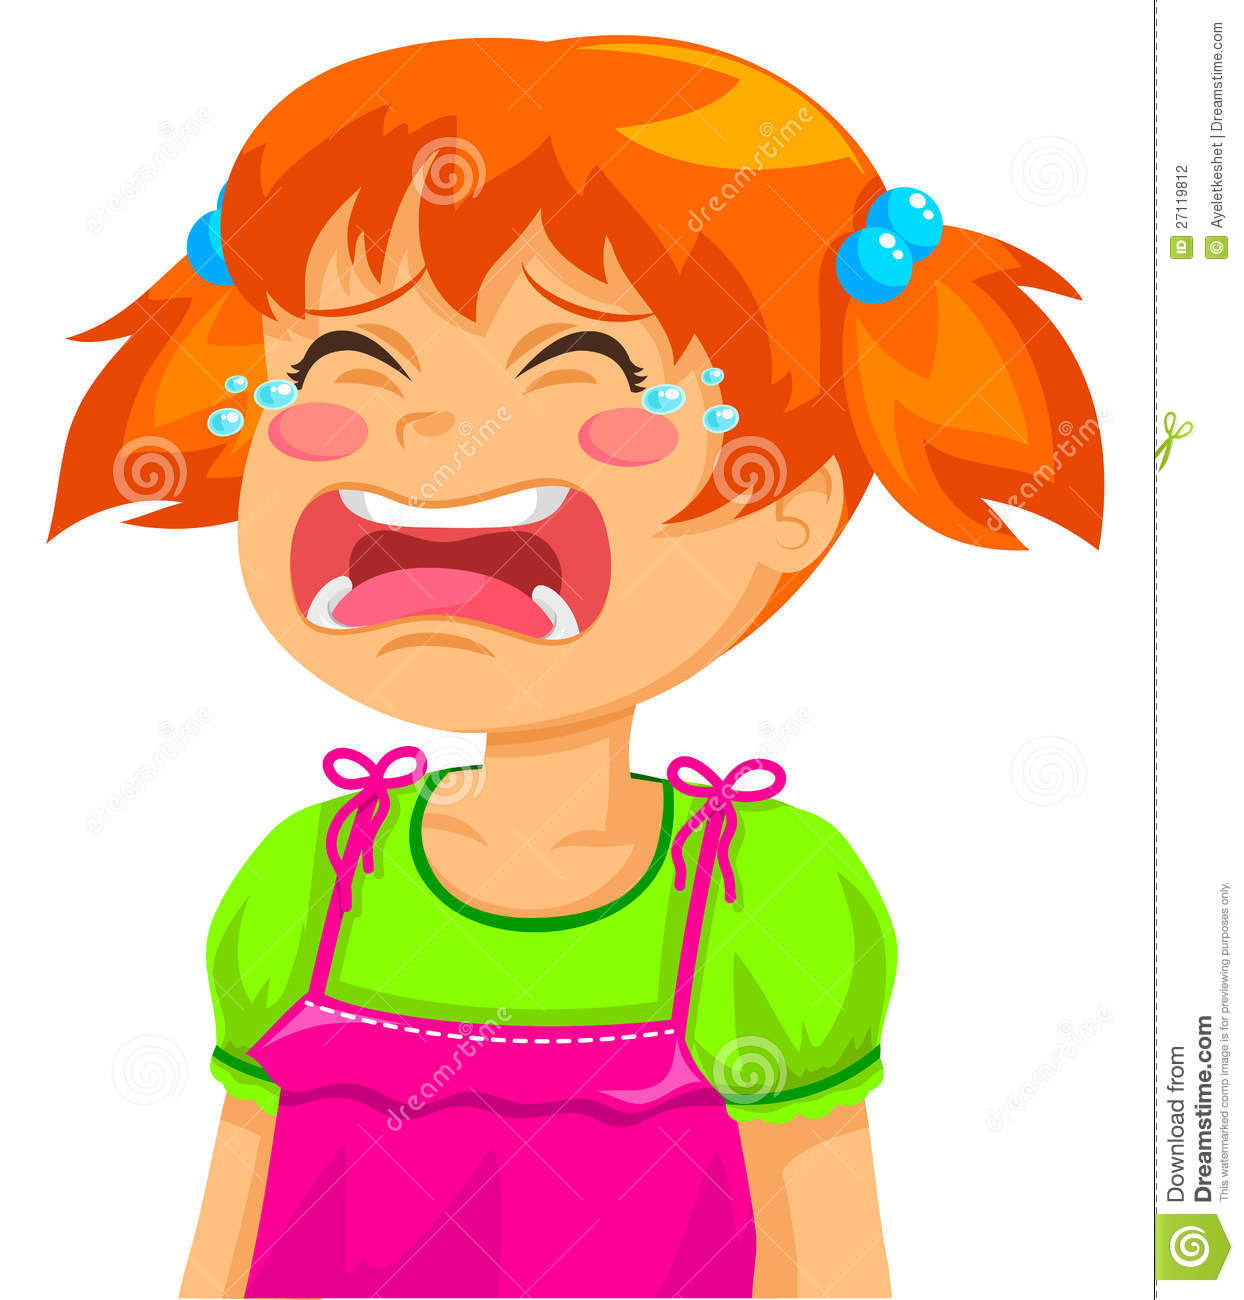 Crying Girl Clipart - Clipart Kid